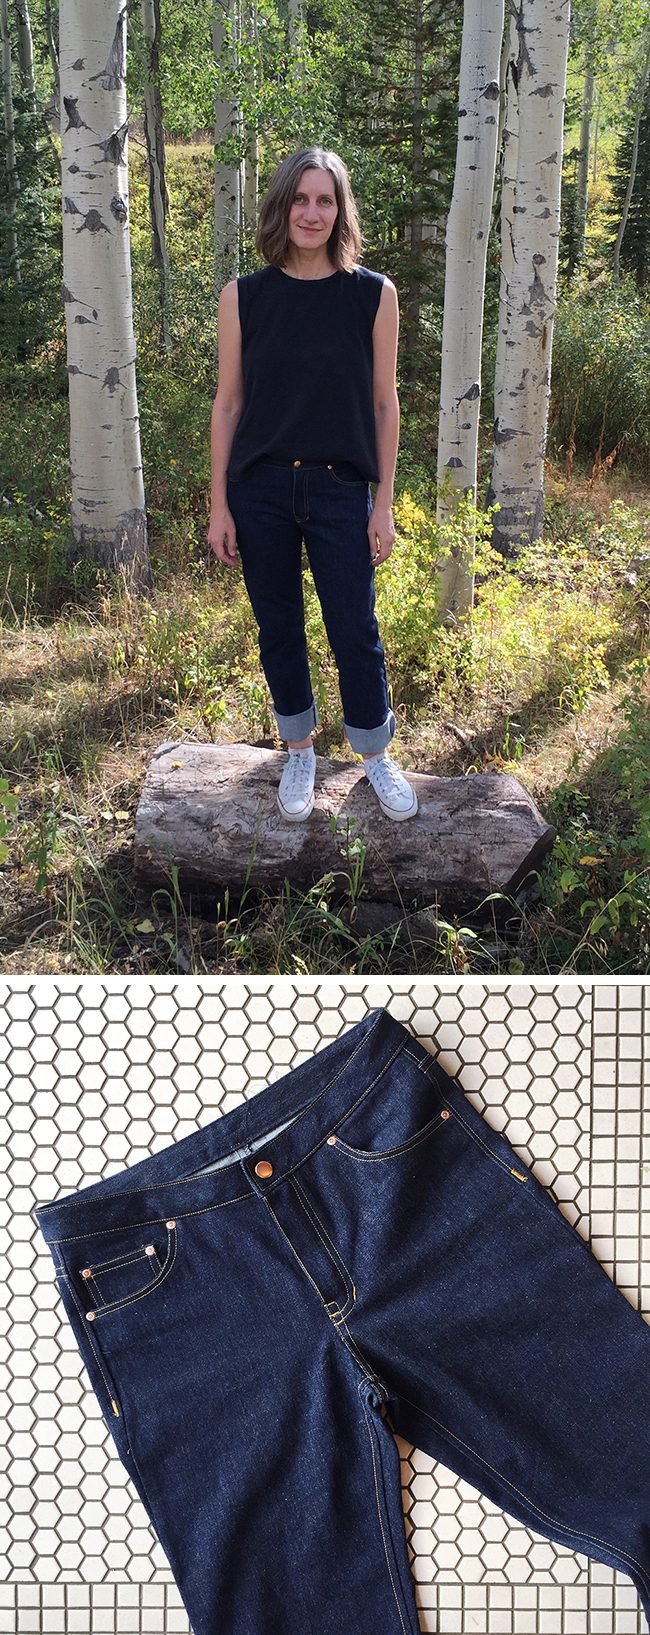 MADE: My first jeans